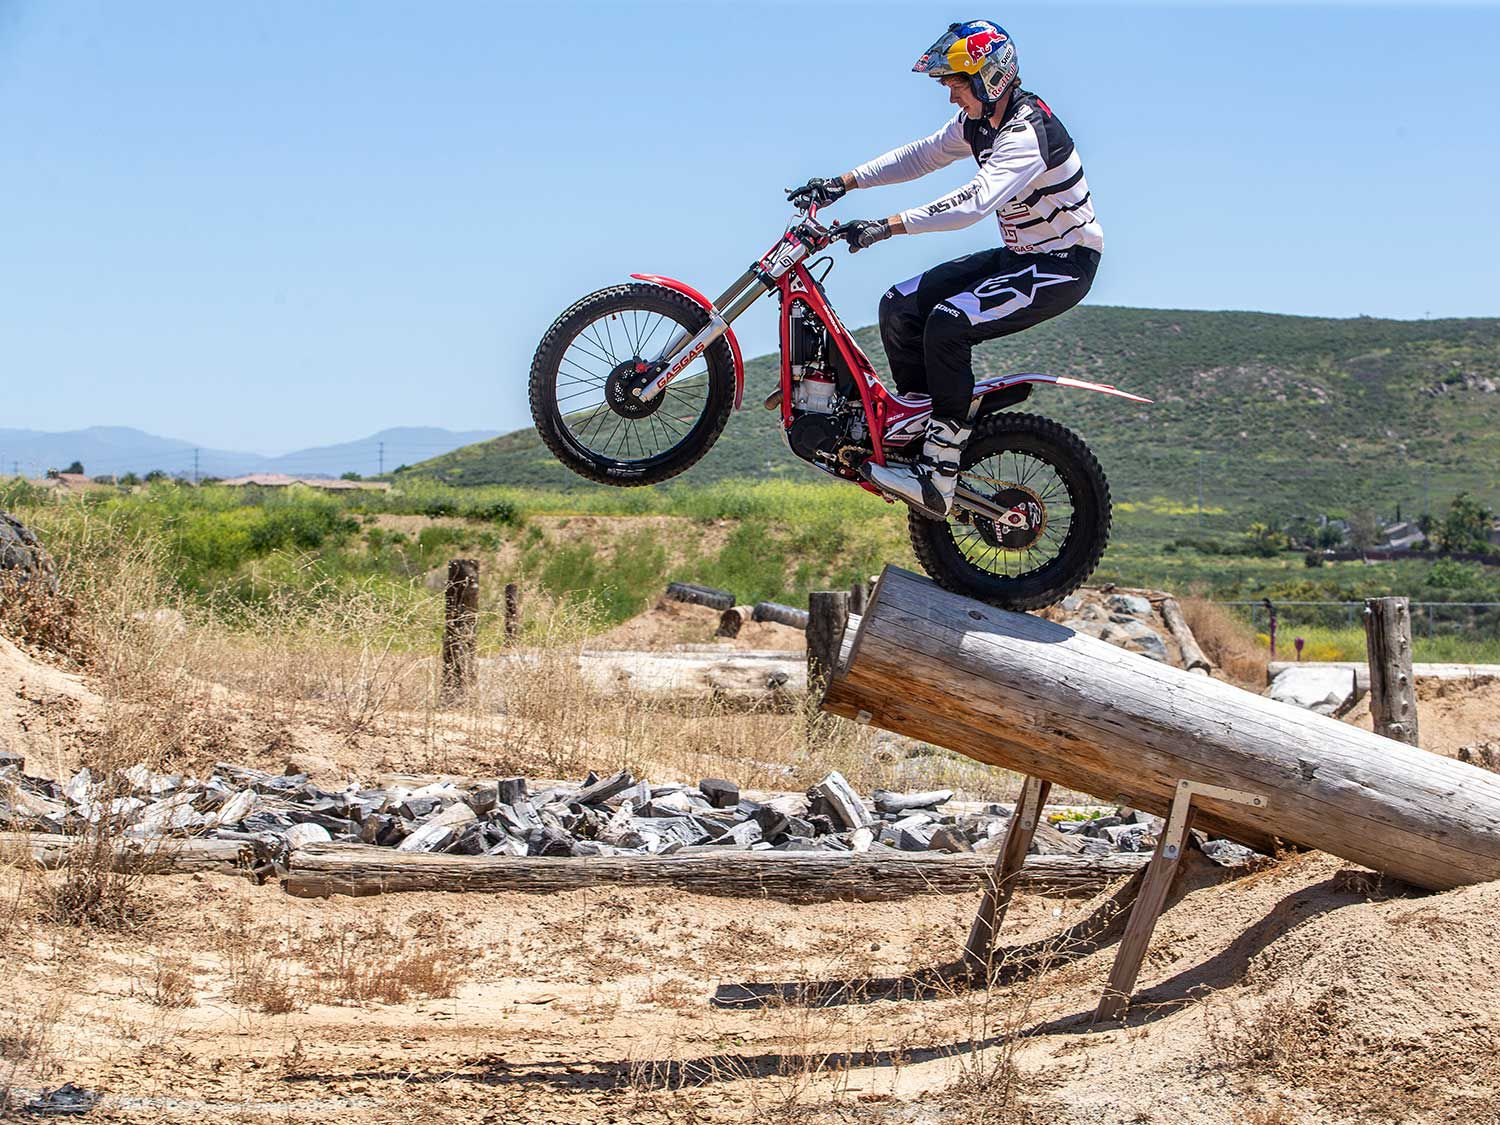 Multitime US trials champ, Geoff Aaron shows what a production GasGas trials bike is in a professionals hands.